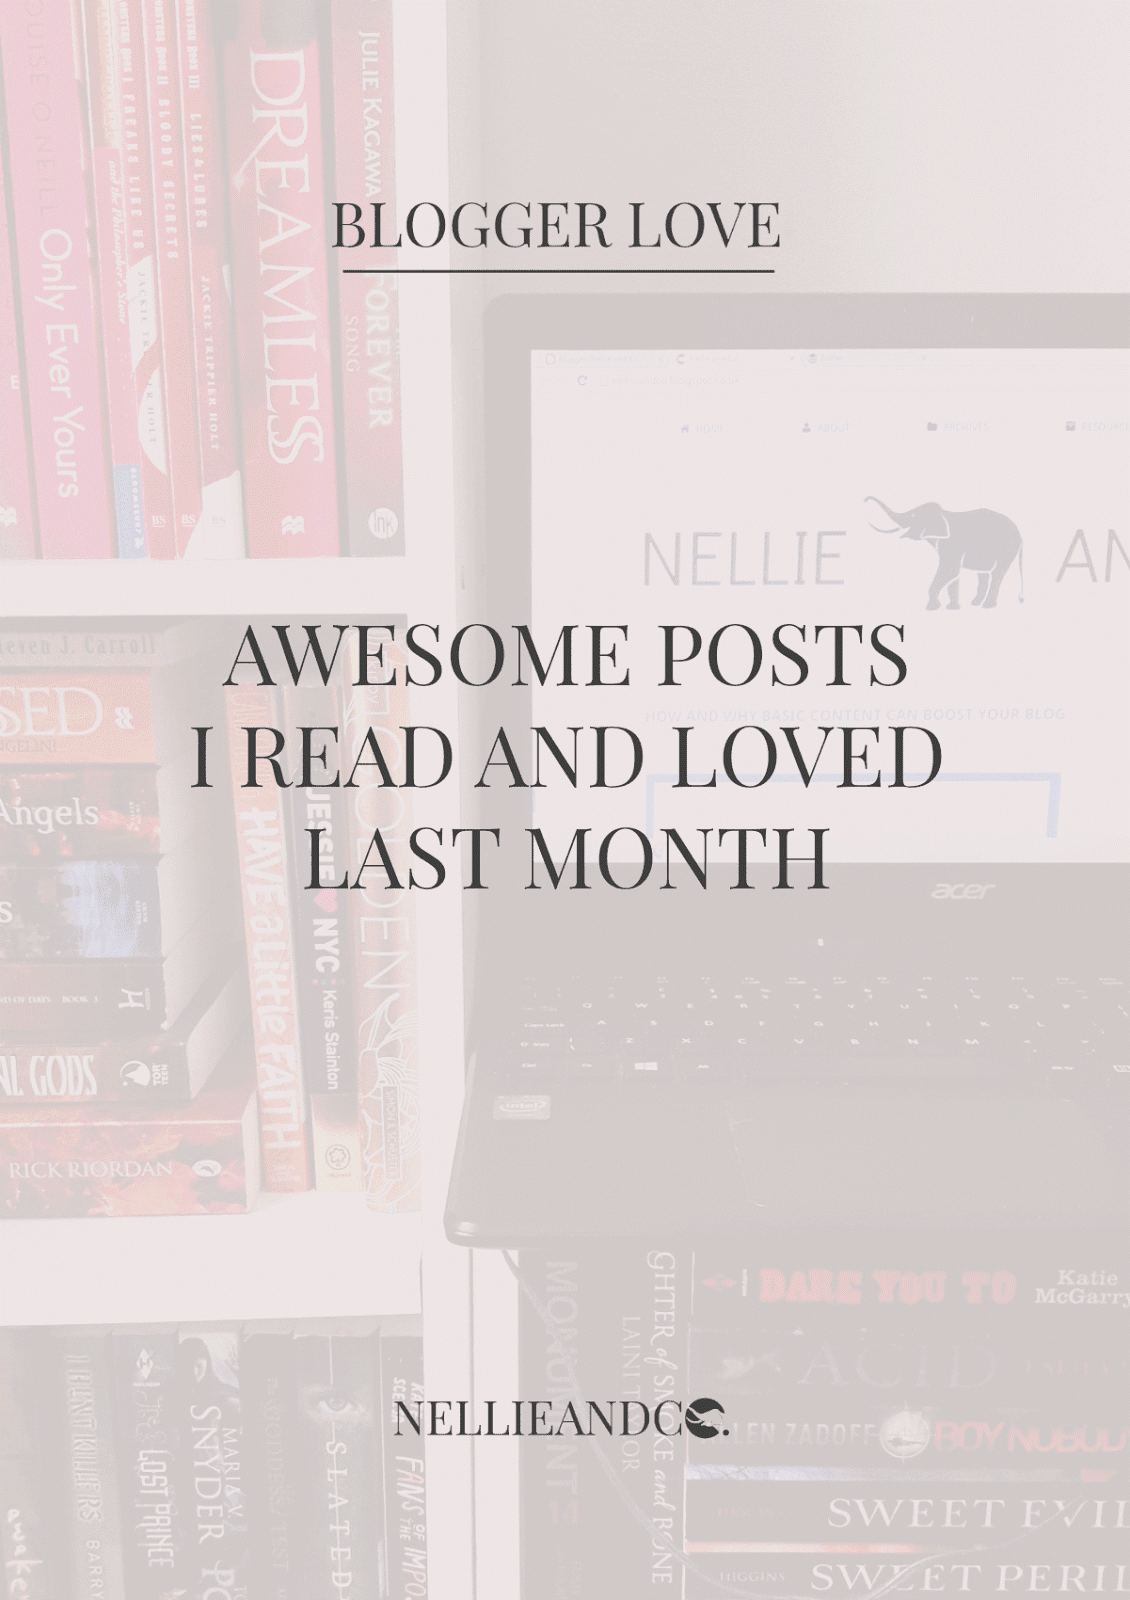 Check out some of the best book, blogging and business related posts of the last month here!